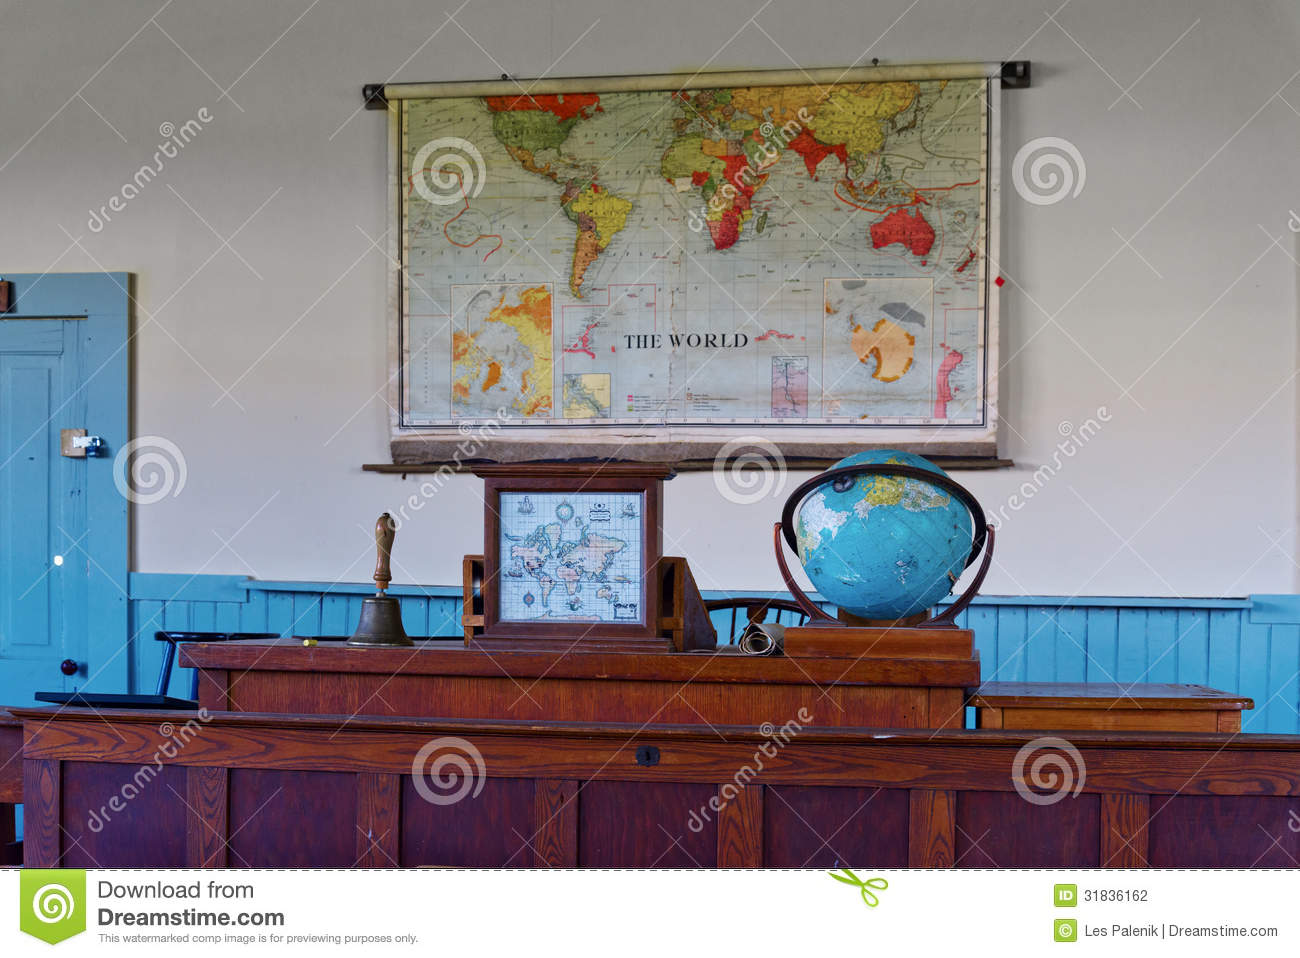 Reclaiming the Classroom With Old-Fashioned Teaching